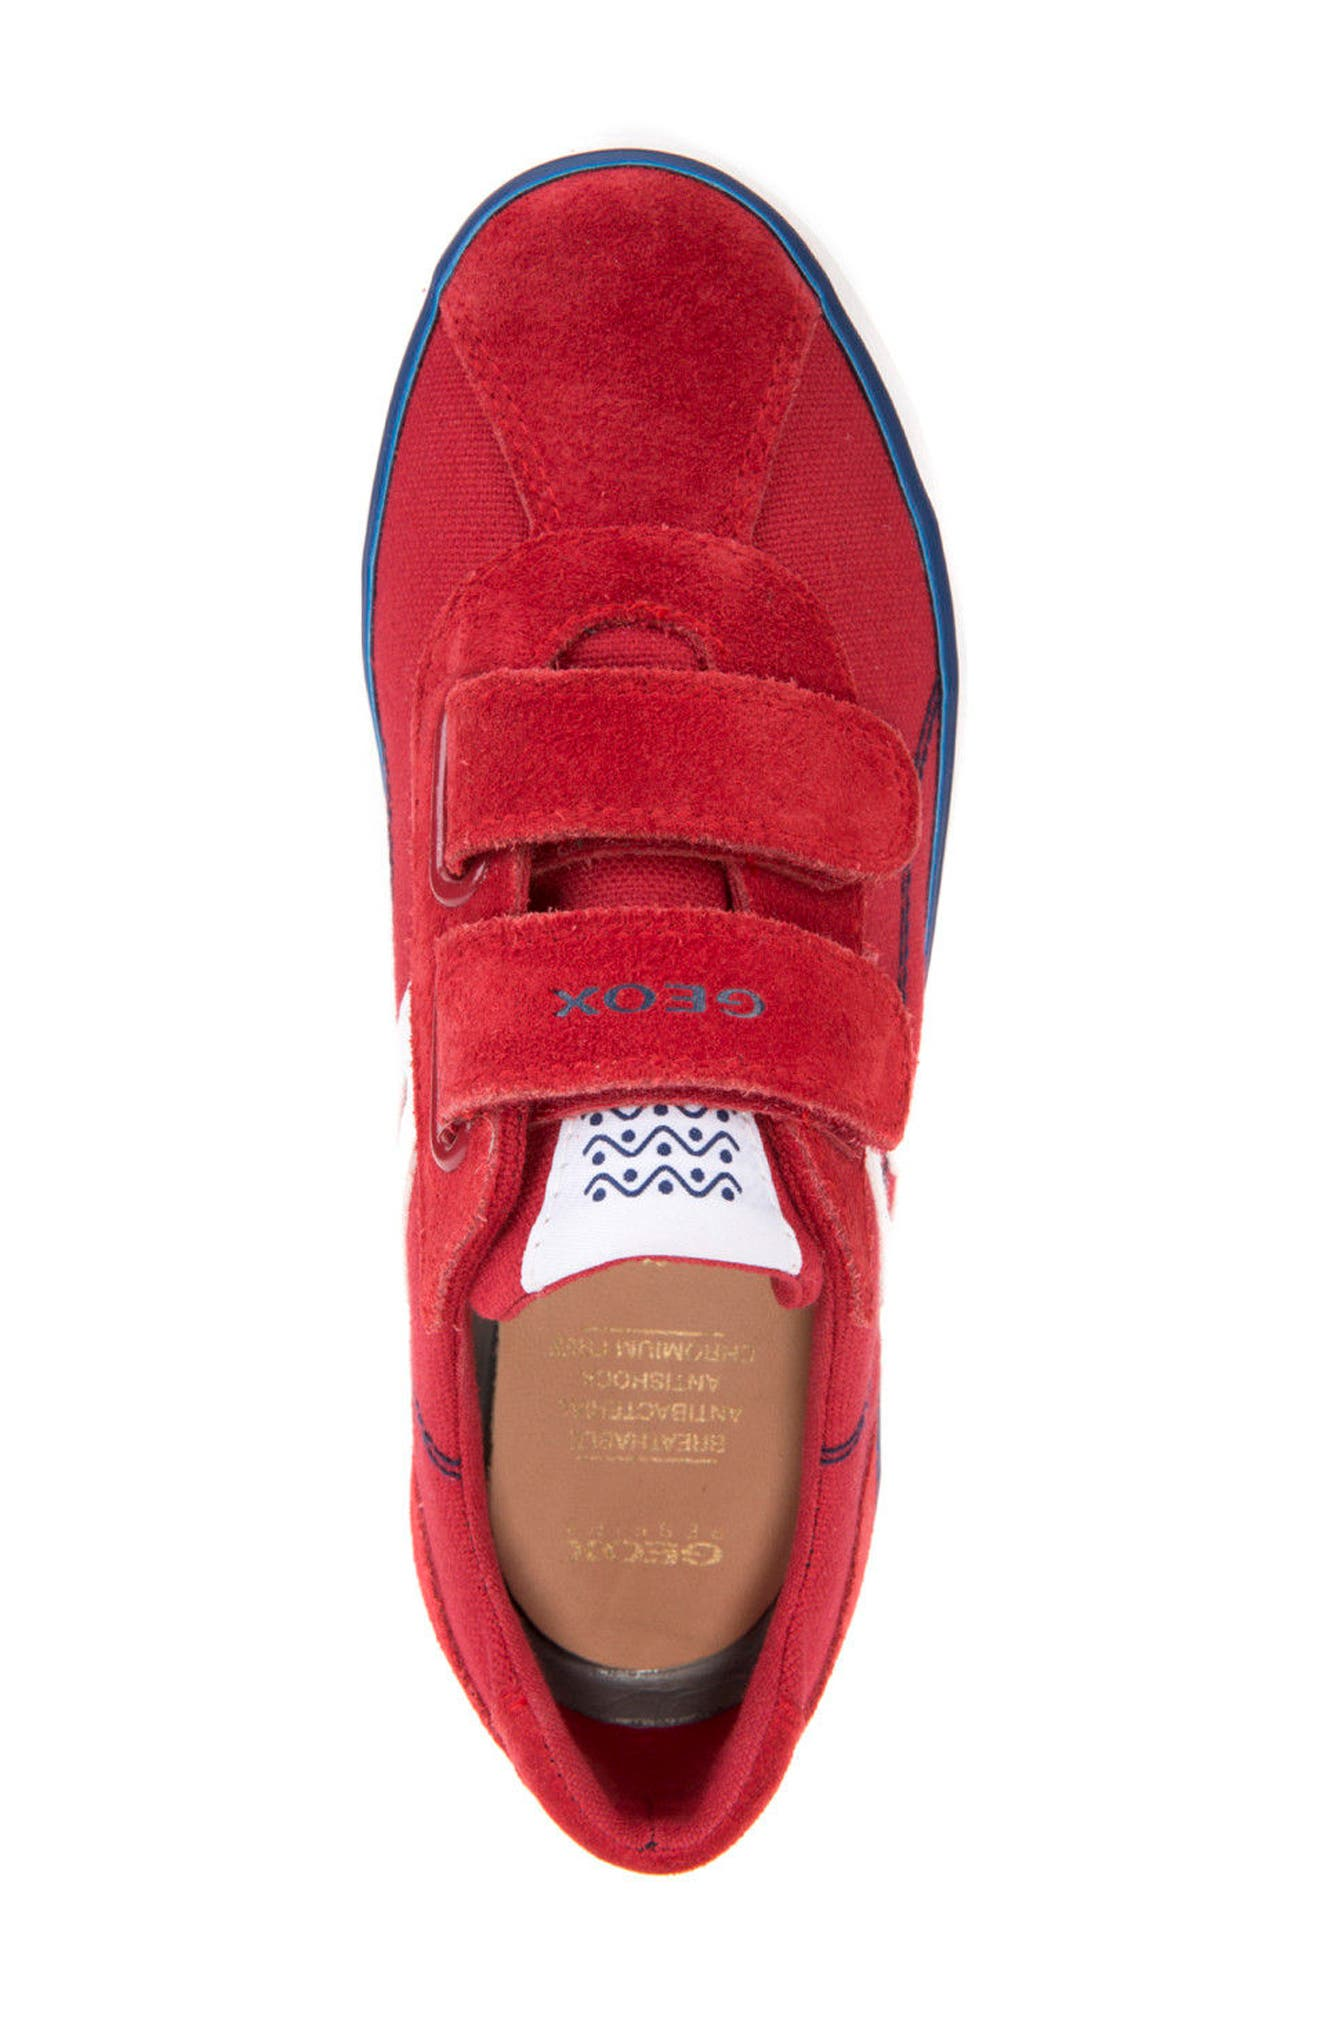 Kilwi Low Top Sneaker,                             Alternate thumbnail 5, color,                             Dark Red/ Navy